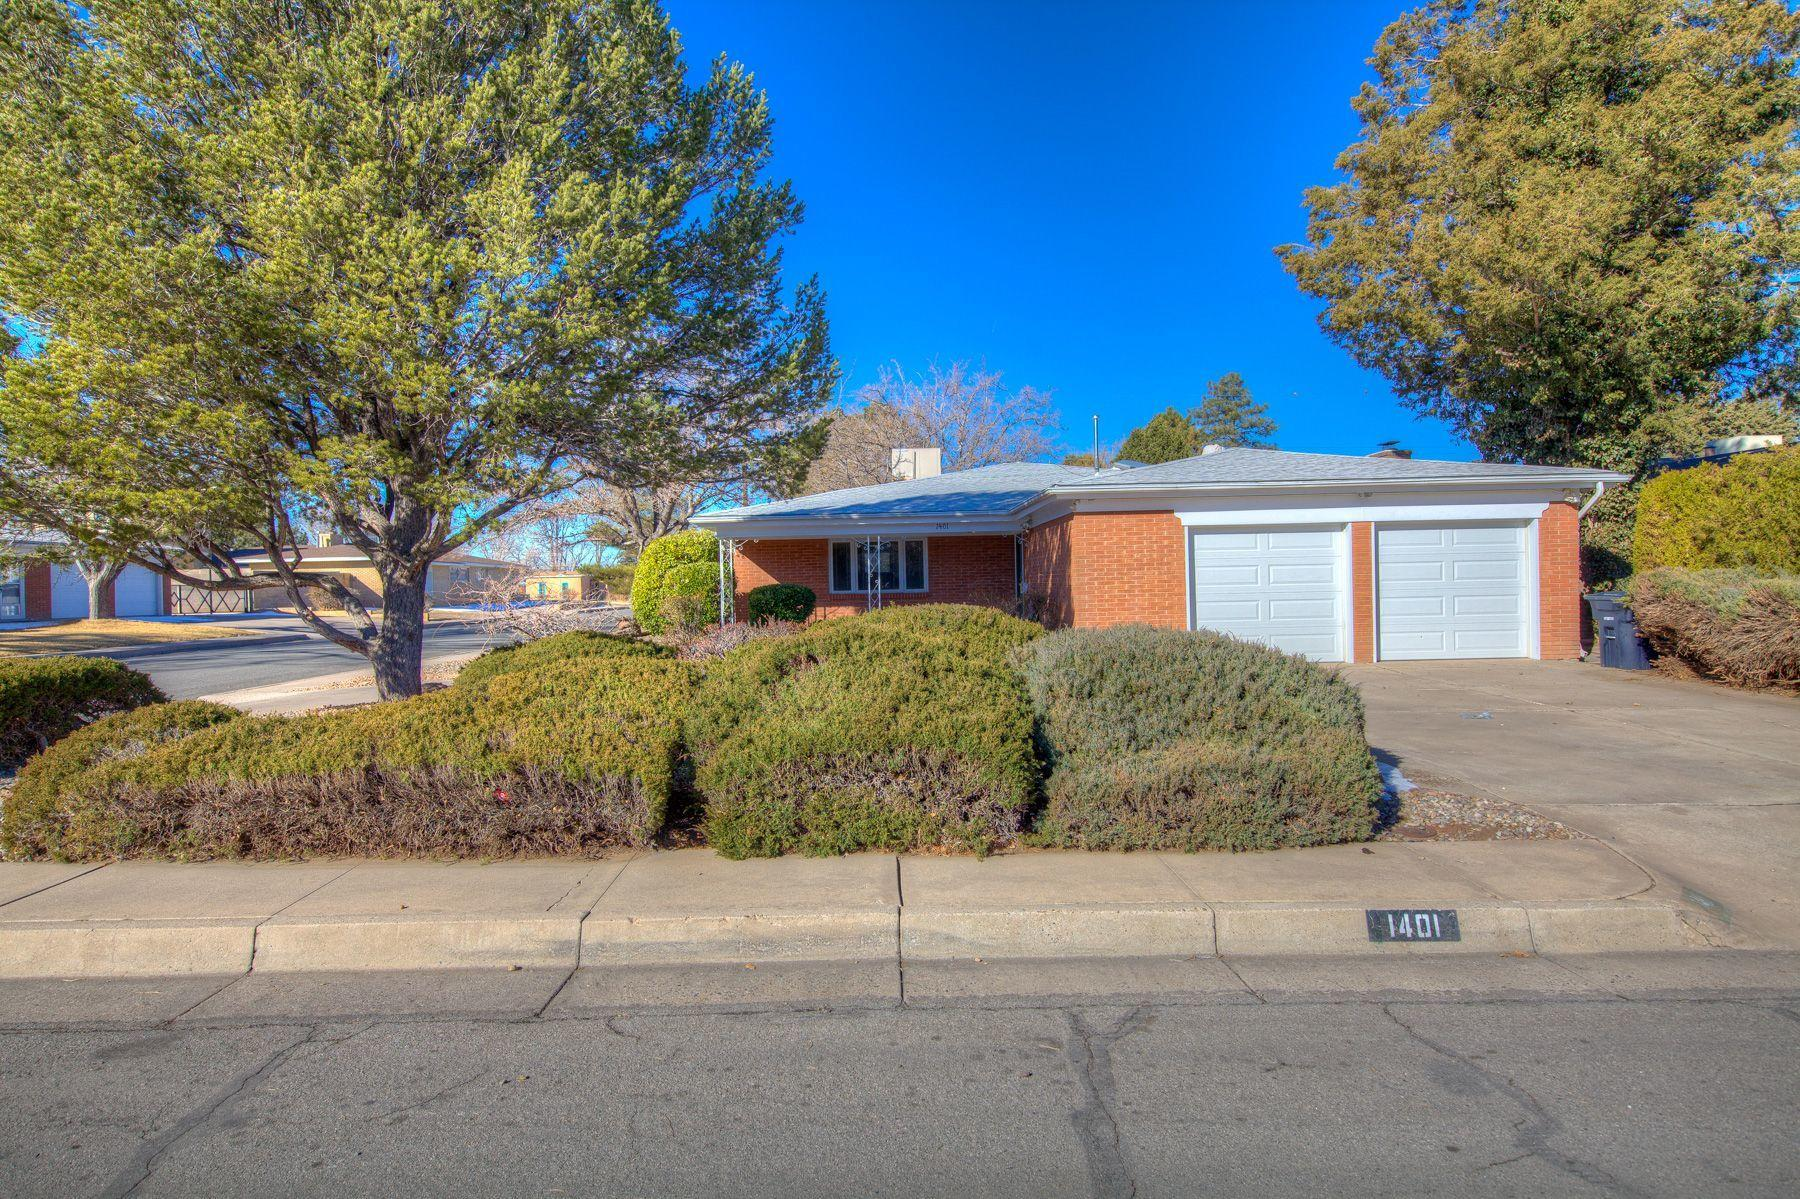 Come view this UPTOWN CHARMER!!!!  House has went thru recent updates that include new bathrooms, new flooring, new paint, granite, and kitchen back splash are just a few of the recent upgrades the seller has completed.  View this property before its to late.